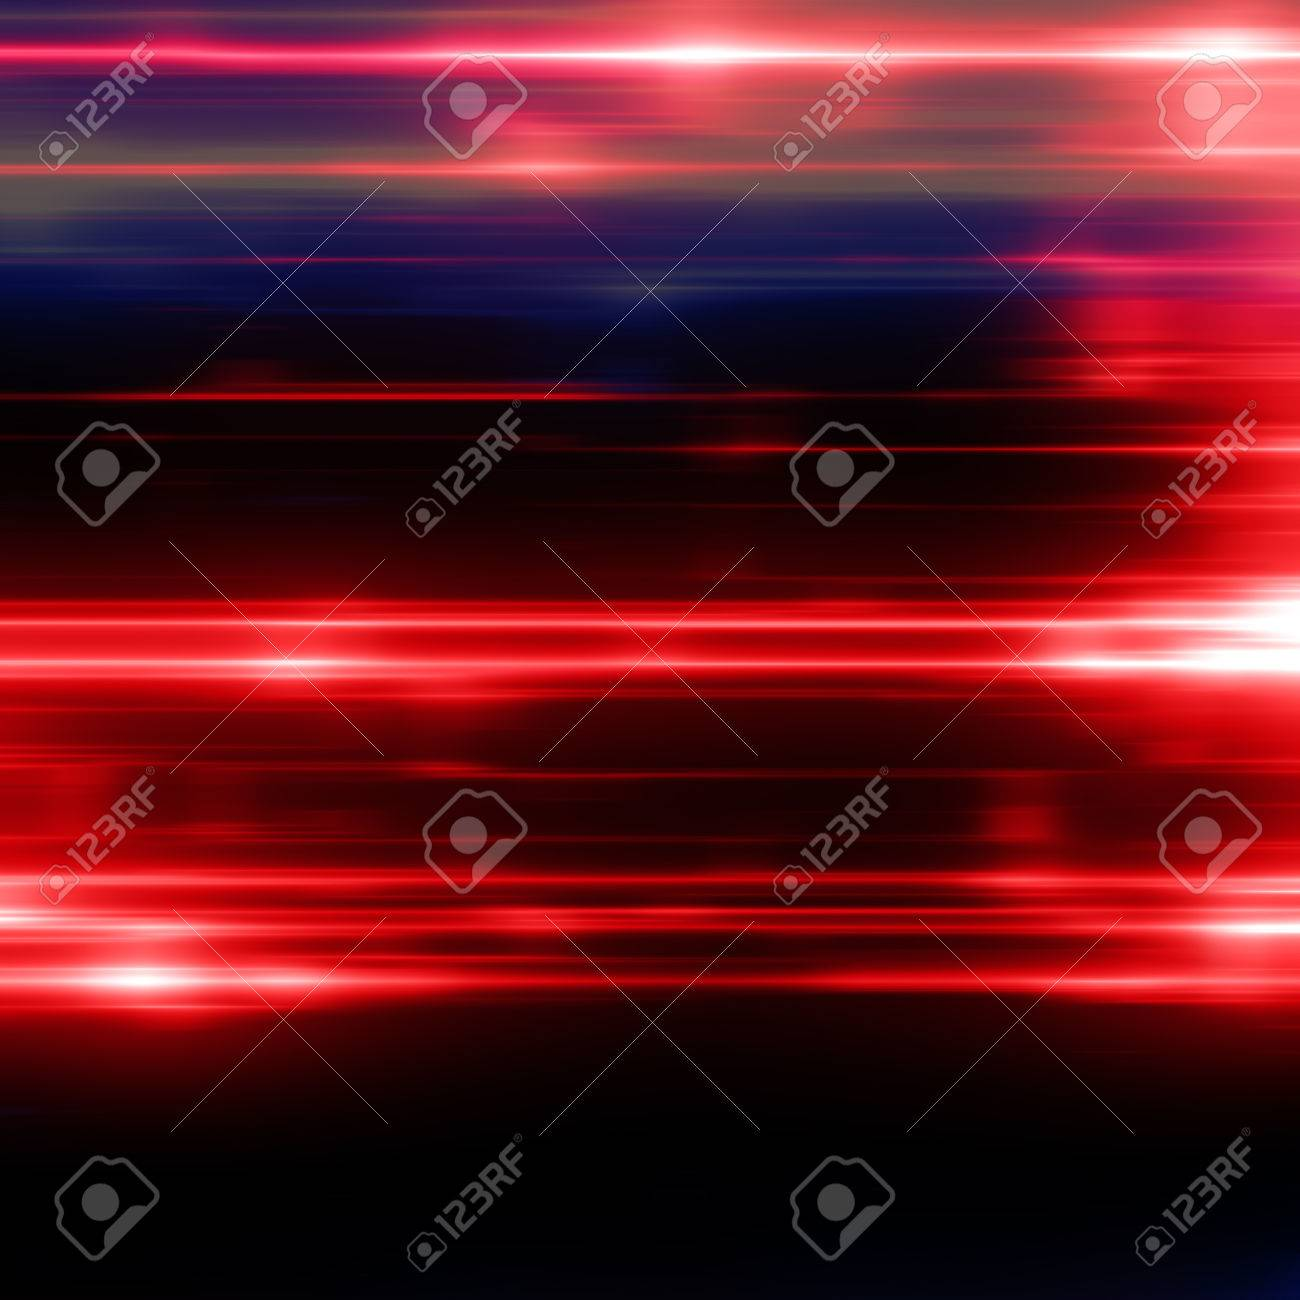 designed film texture background with light leak stock photo 39518199